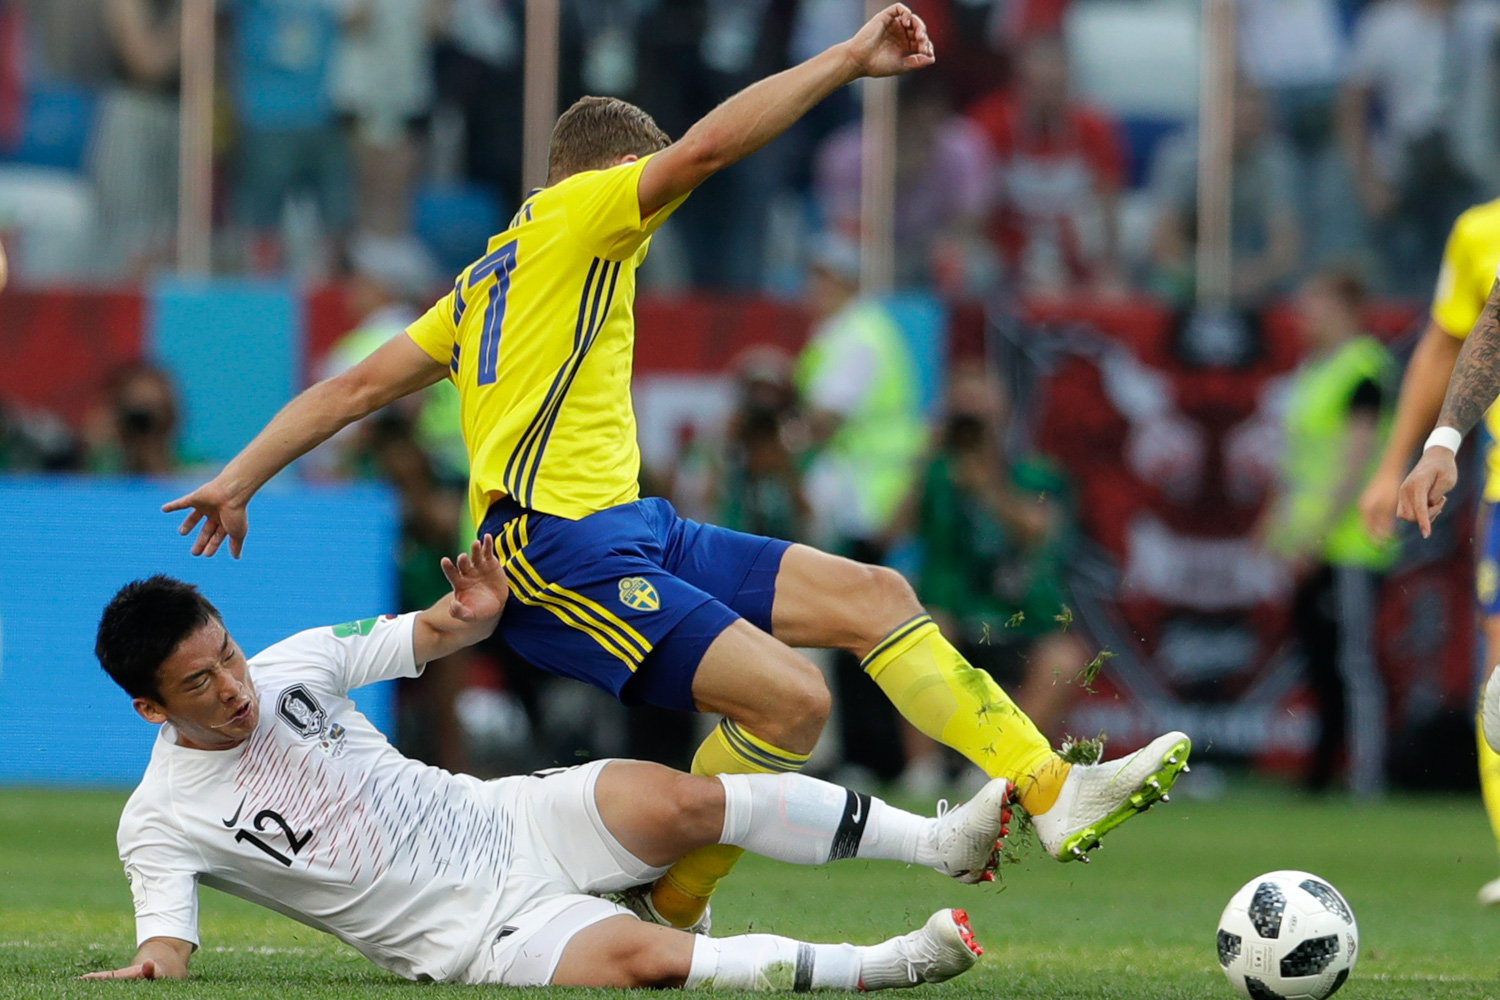 <div class='meta'><div class='origin-logo' data-origin='none'></div><span class='caption-text' data-credit='Petr David Josek/AP'>Sweden's Viktor Claesson is tackled by South Korea's Kim Min-woo during the group F match between Sweden and South Korea</span></div>